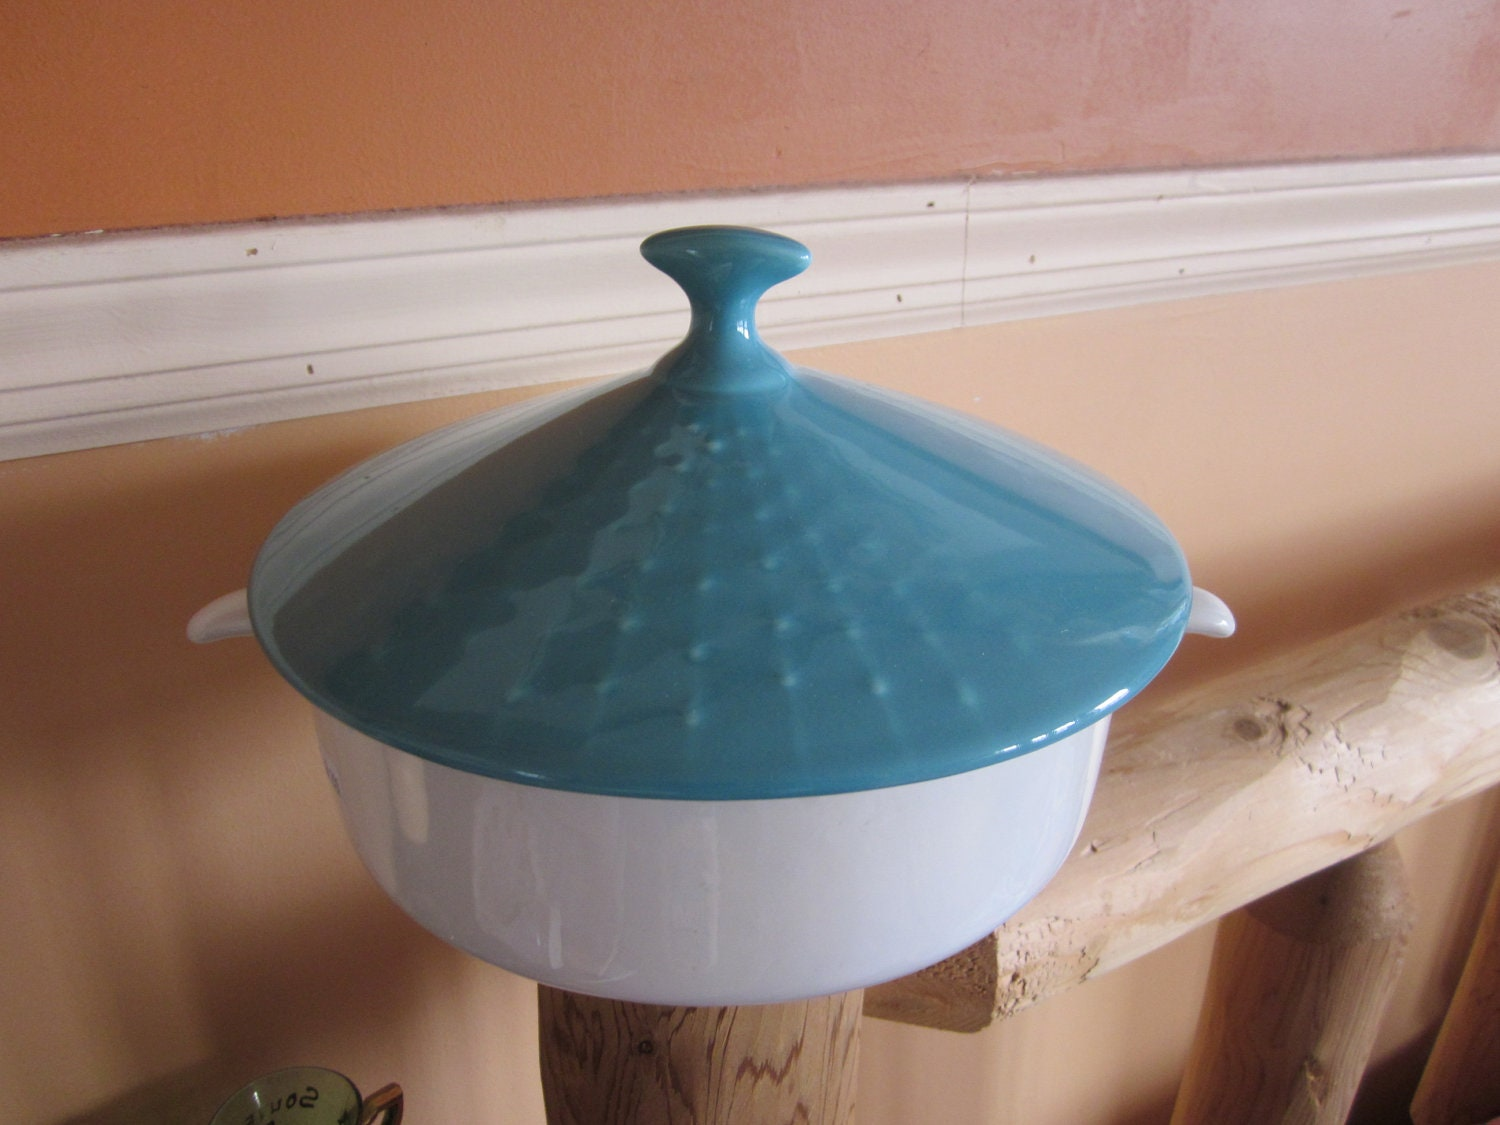 turquoise casserole, mid century modern, covered casserole, - diddle47